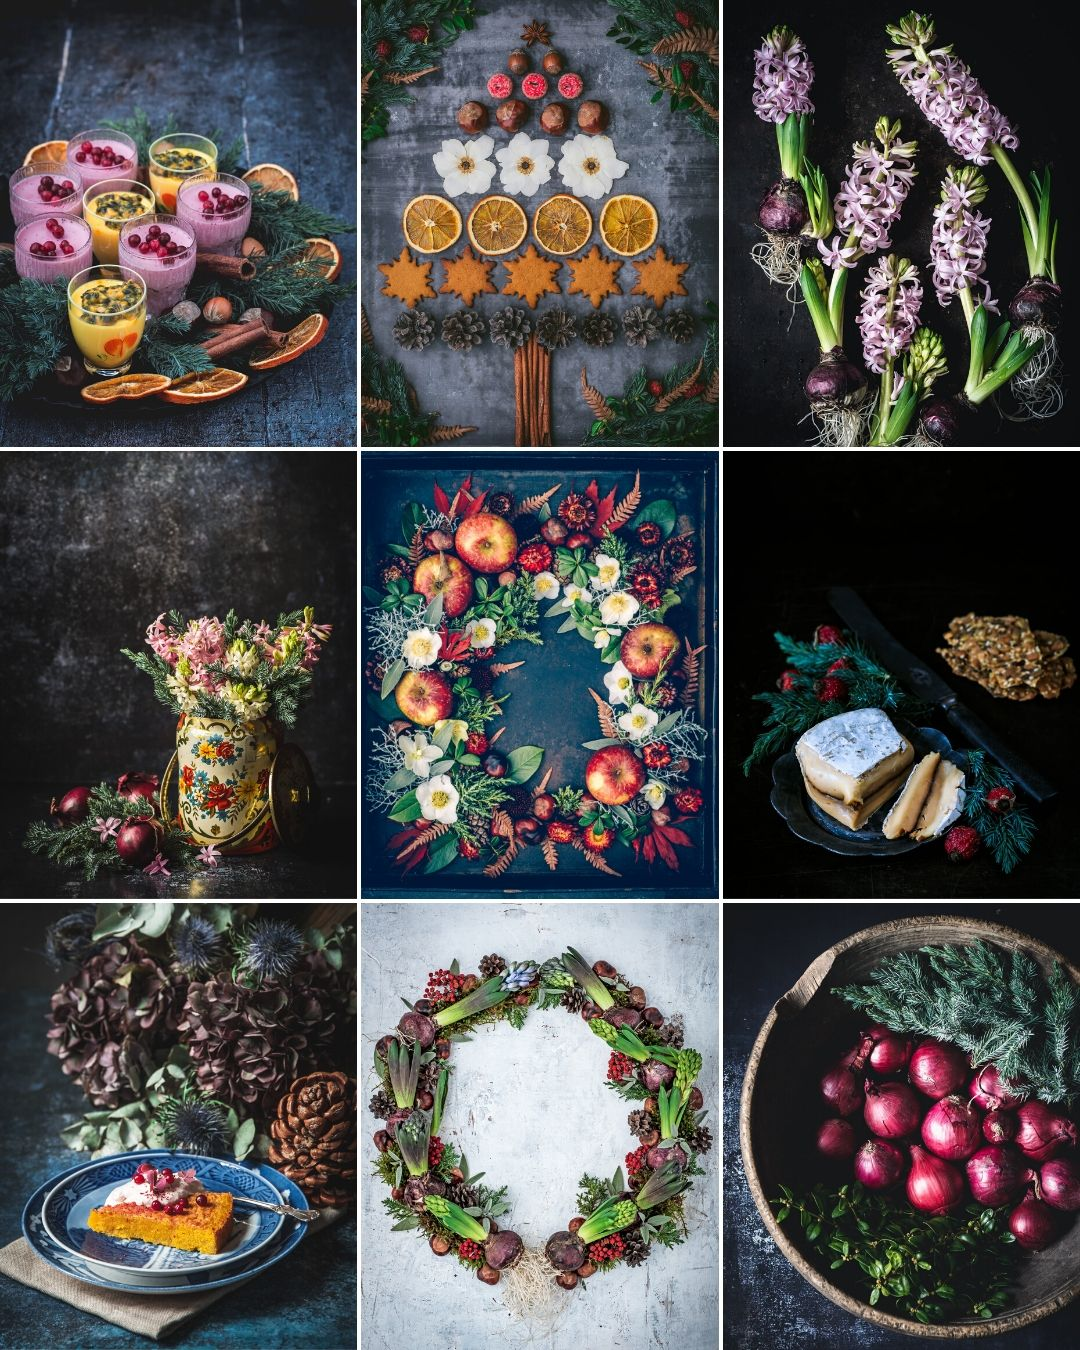 mest blomster december instagram